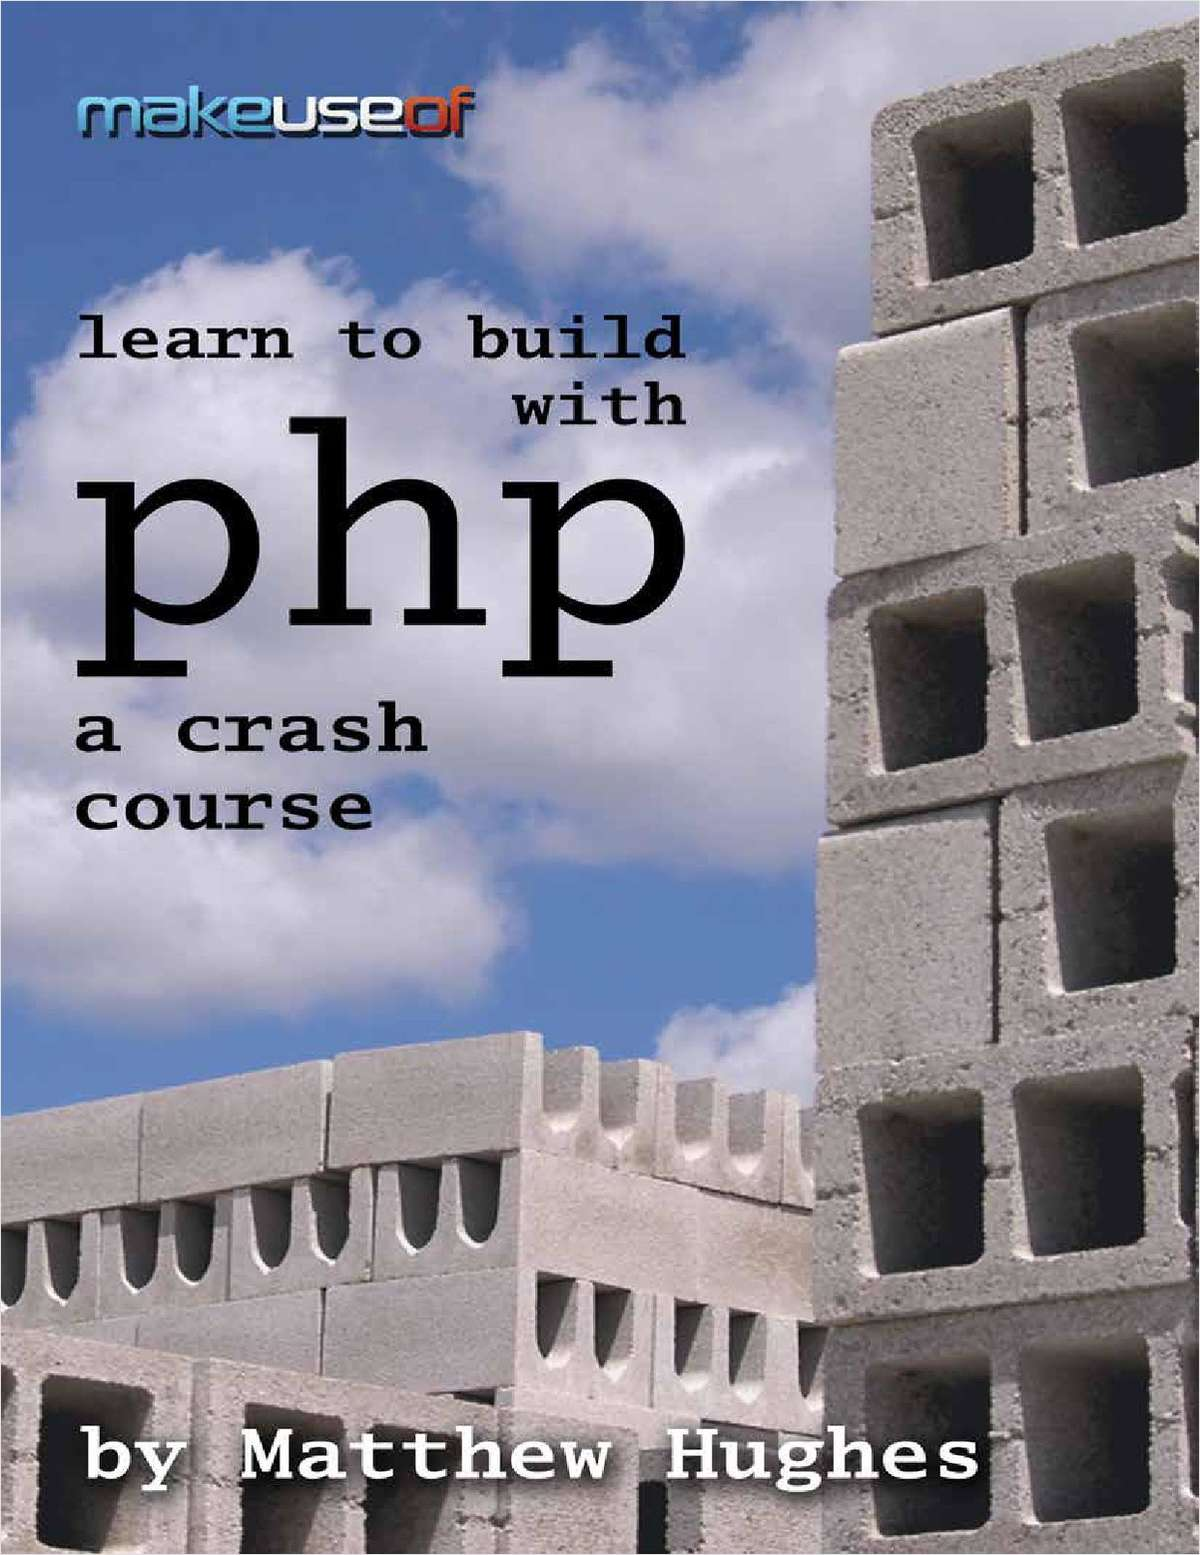 Learn to Build with PHP - A Crash Course